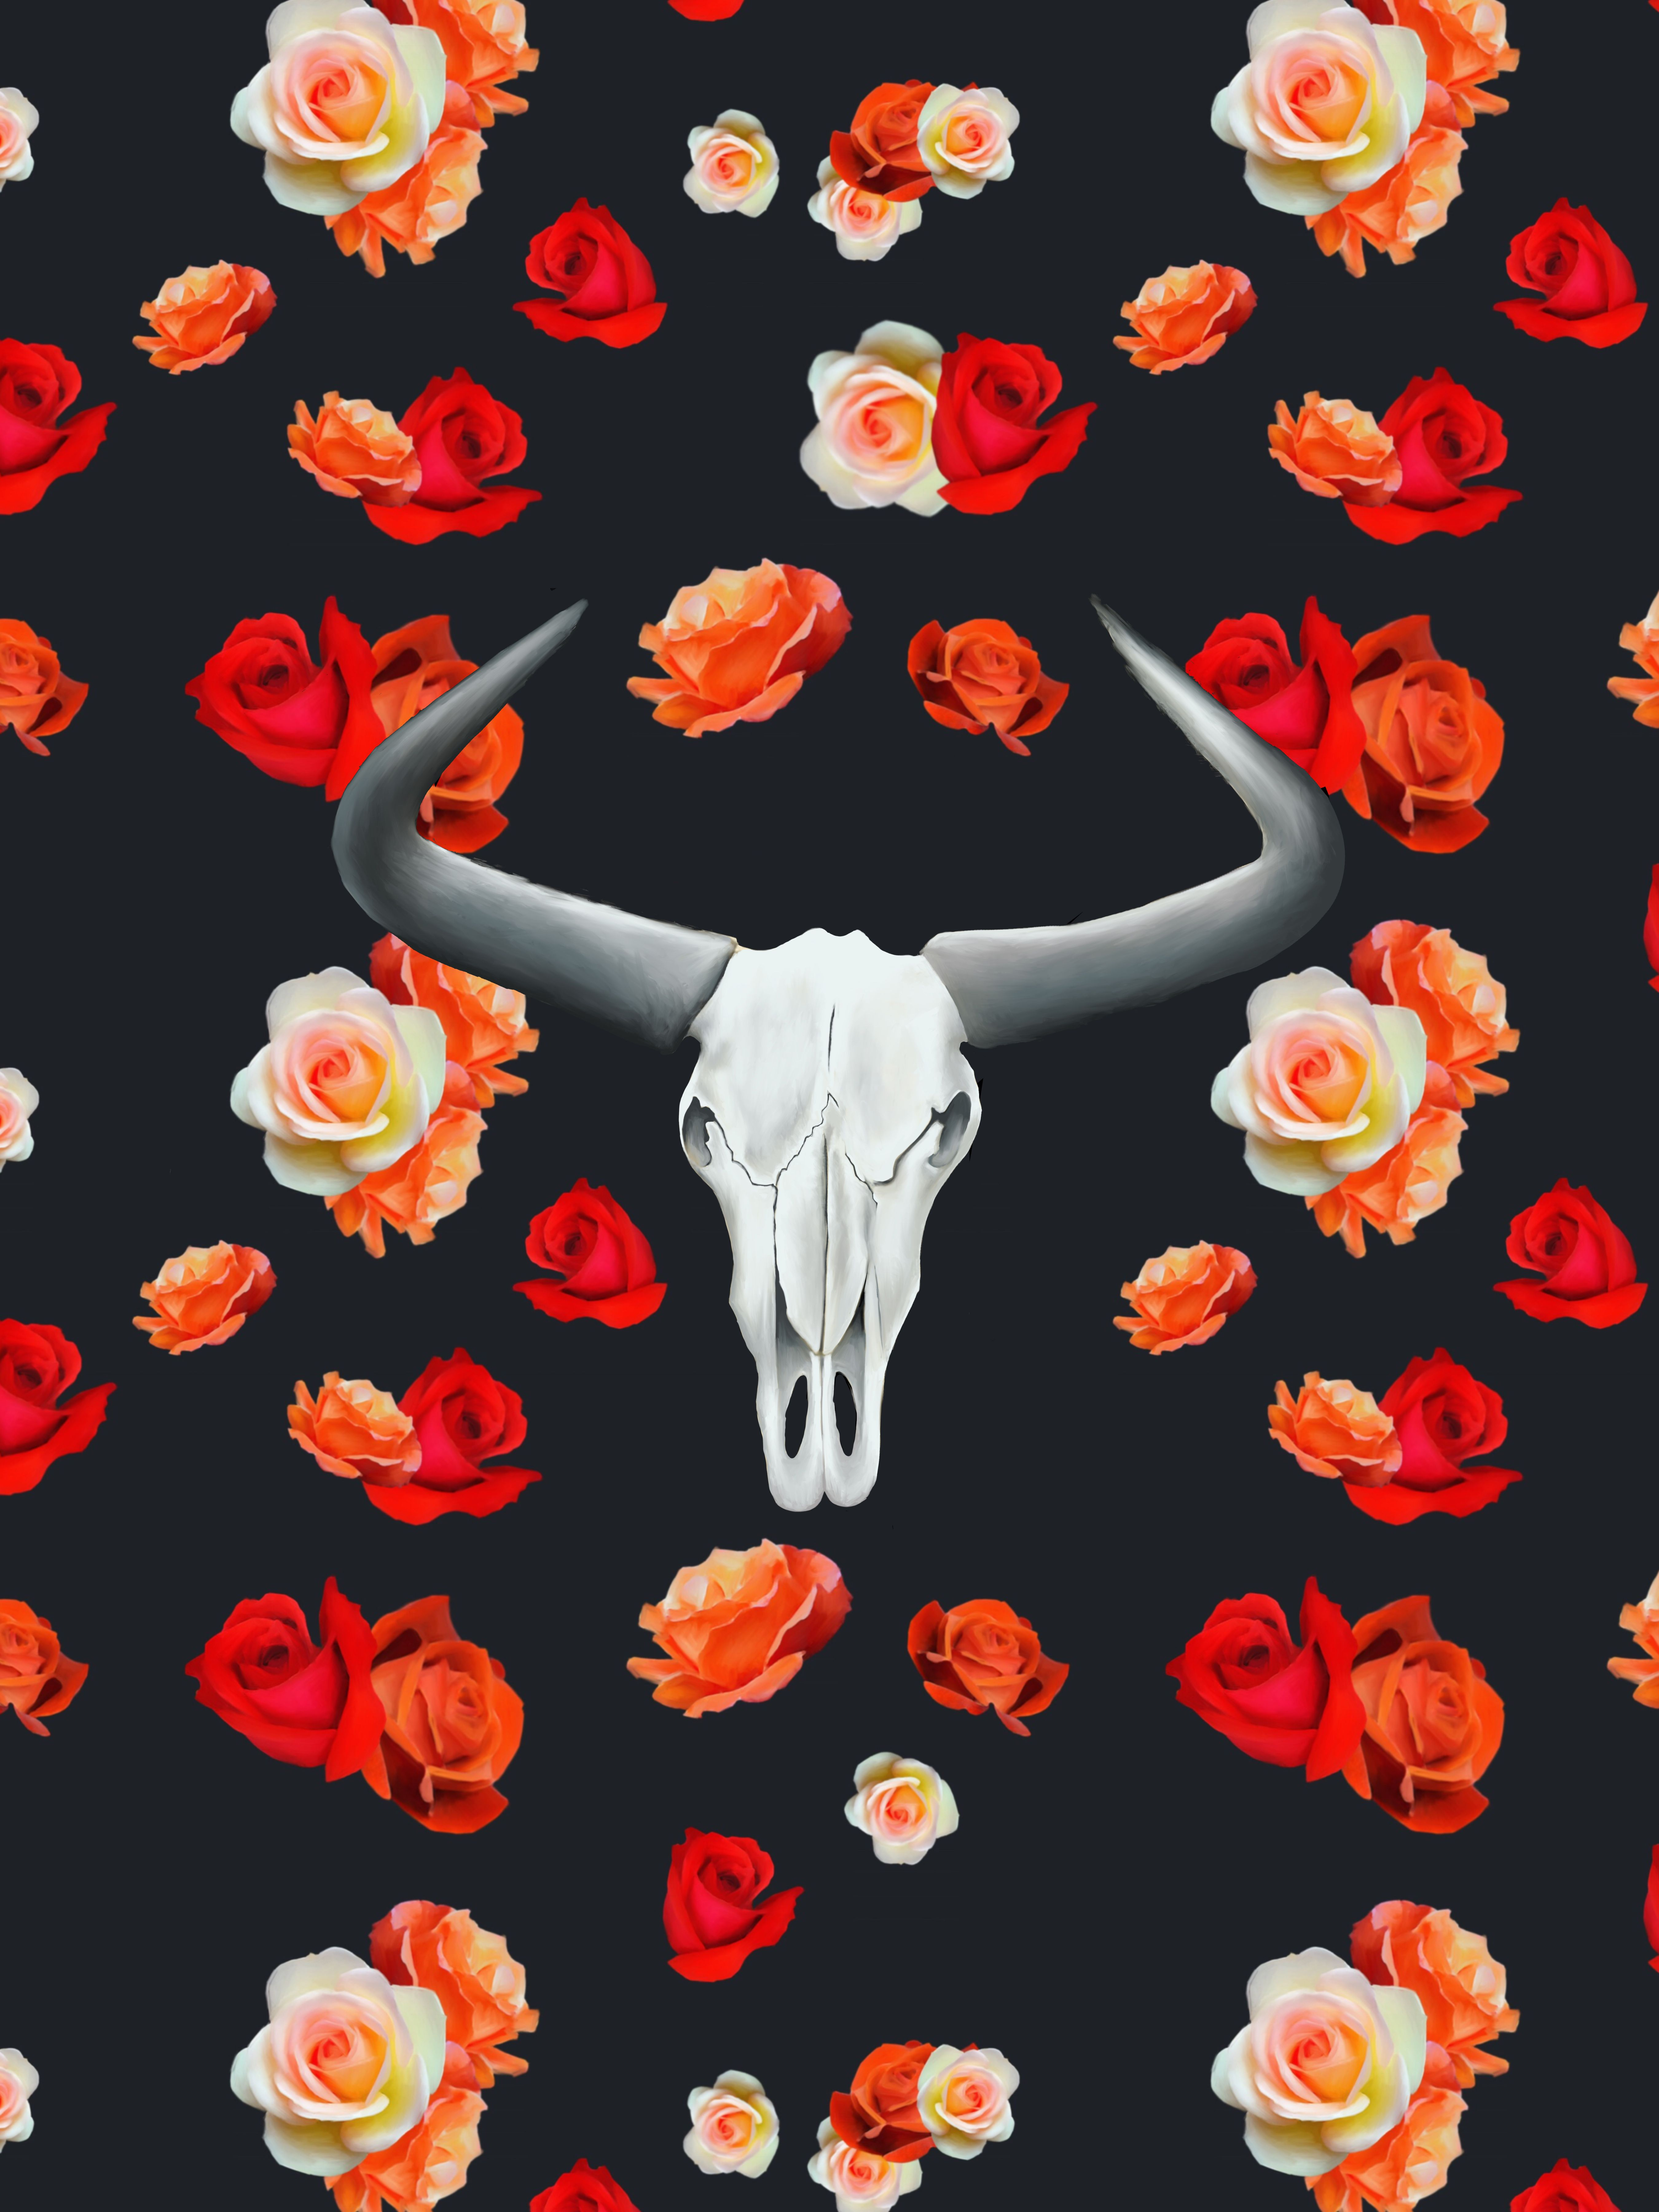 Cow Skull with Roses Digital Print in 2020 Cow wallpaper